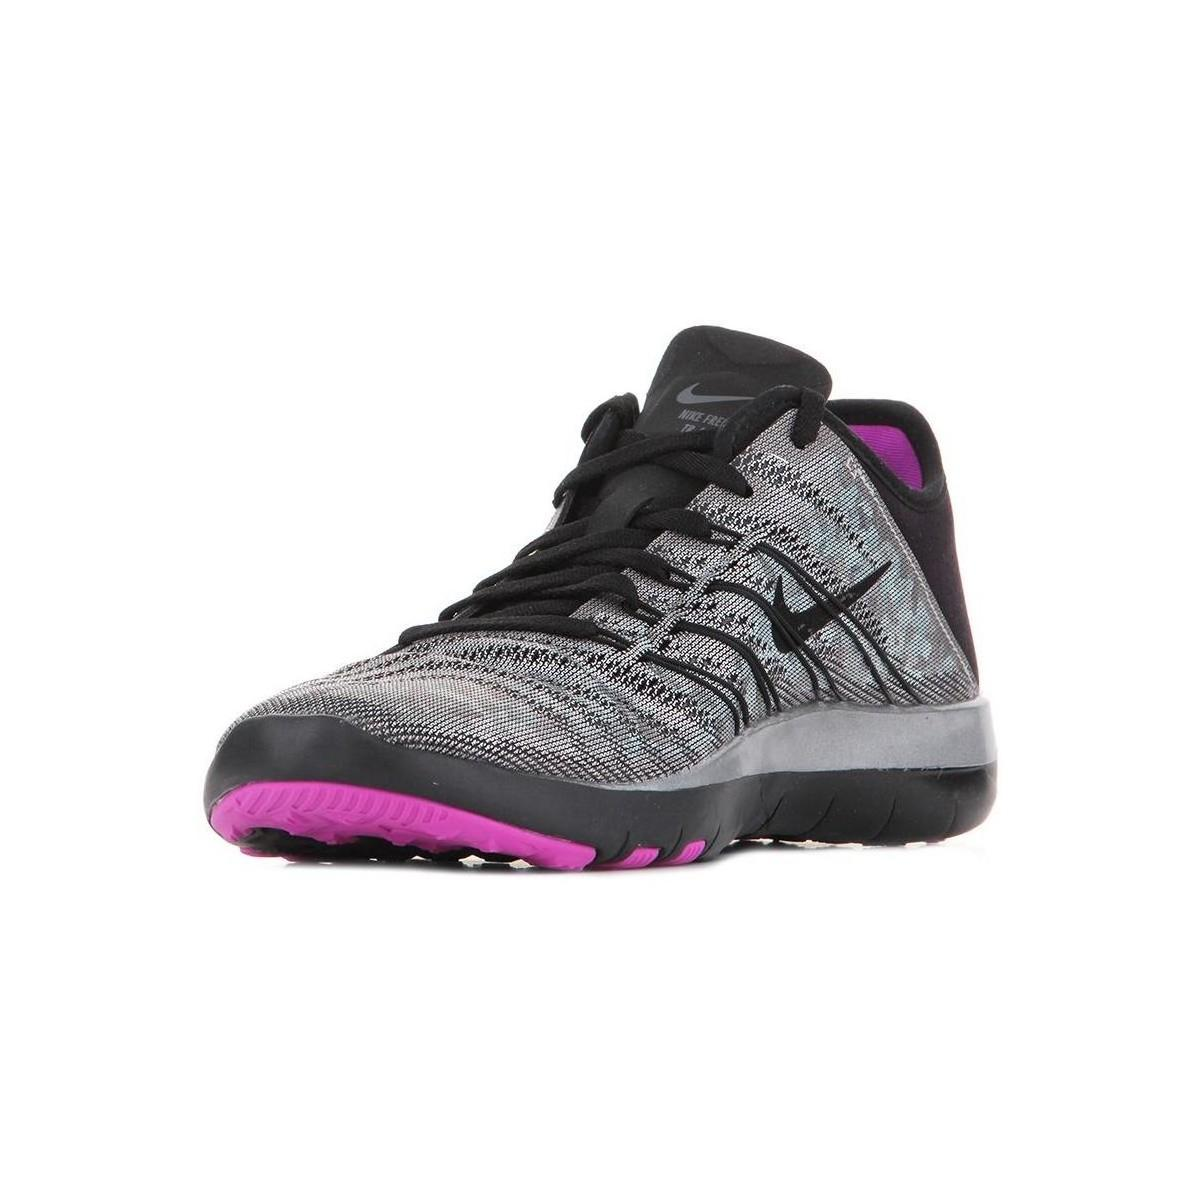 ad7d18232b96 Nike Free Tr 6 Mtlc 849805-002 Women s Running Trainers In Grey in Gray -  Lyst